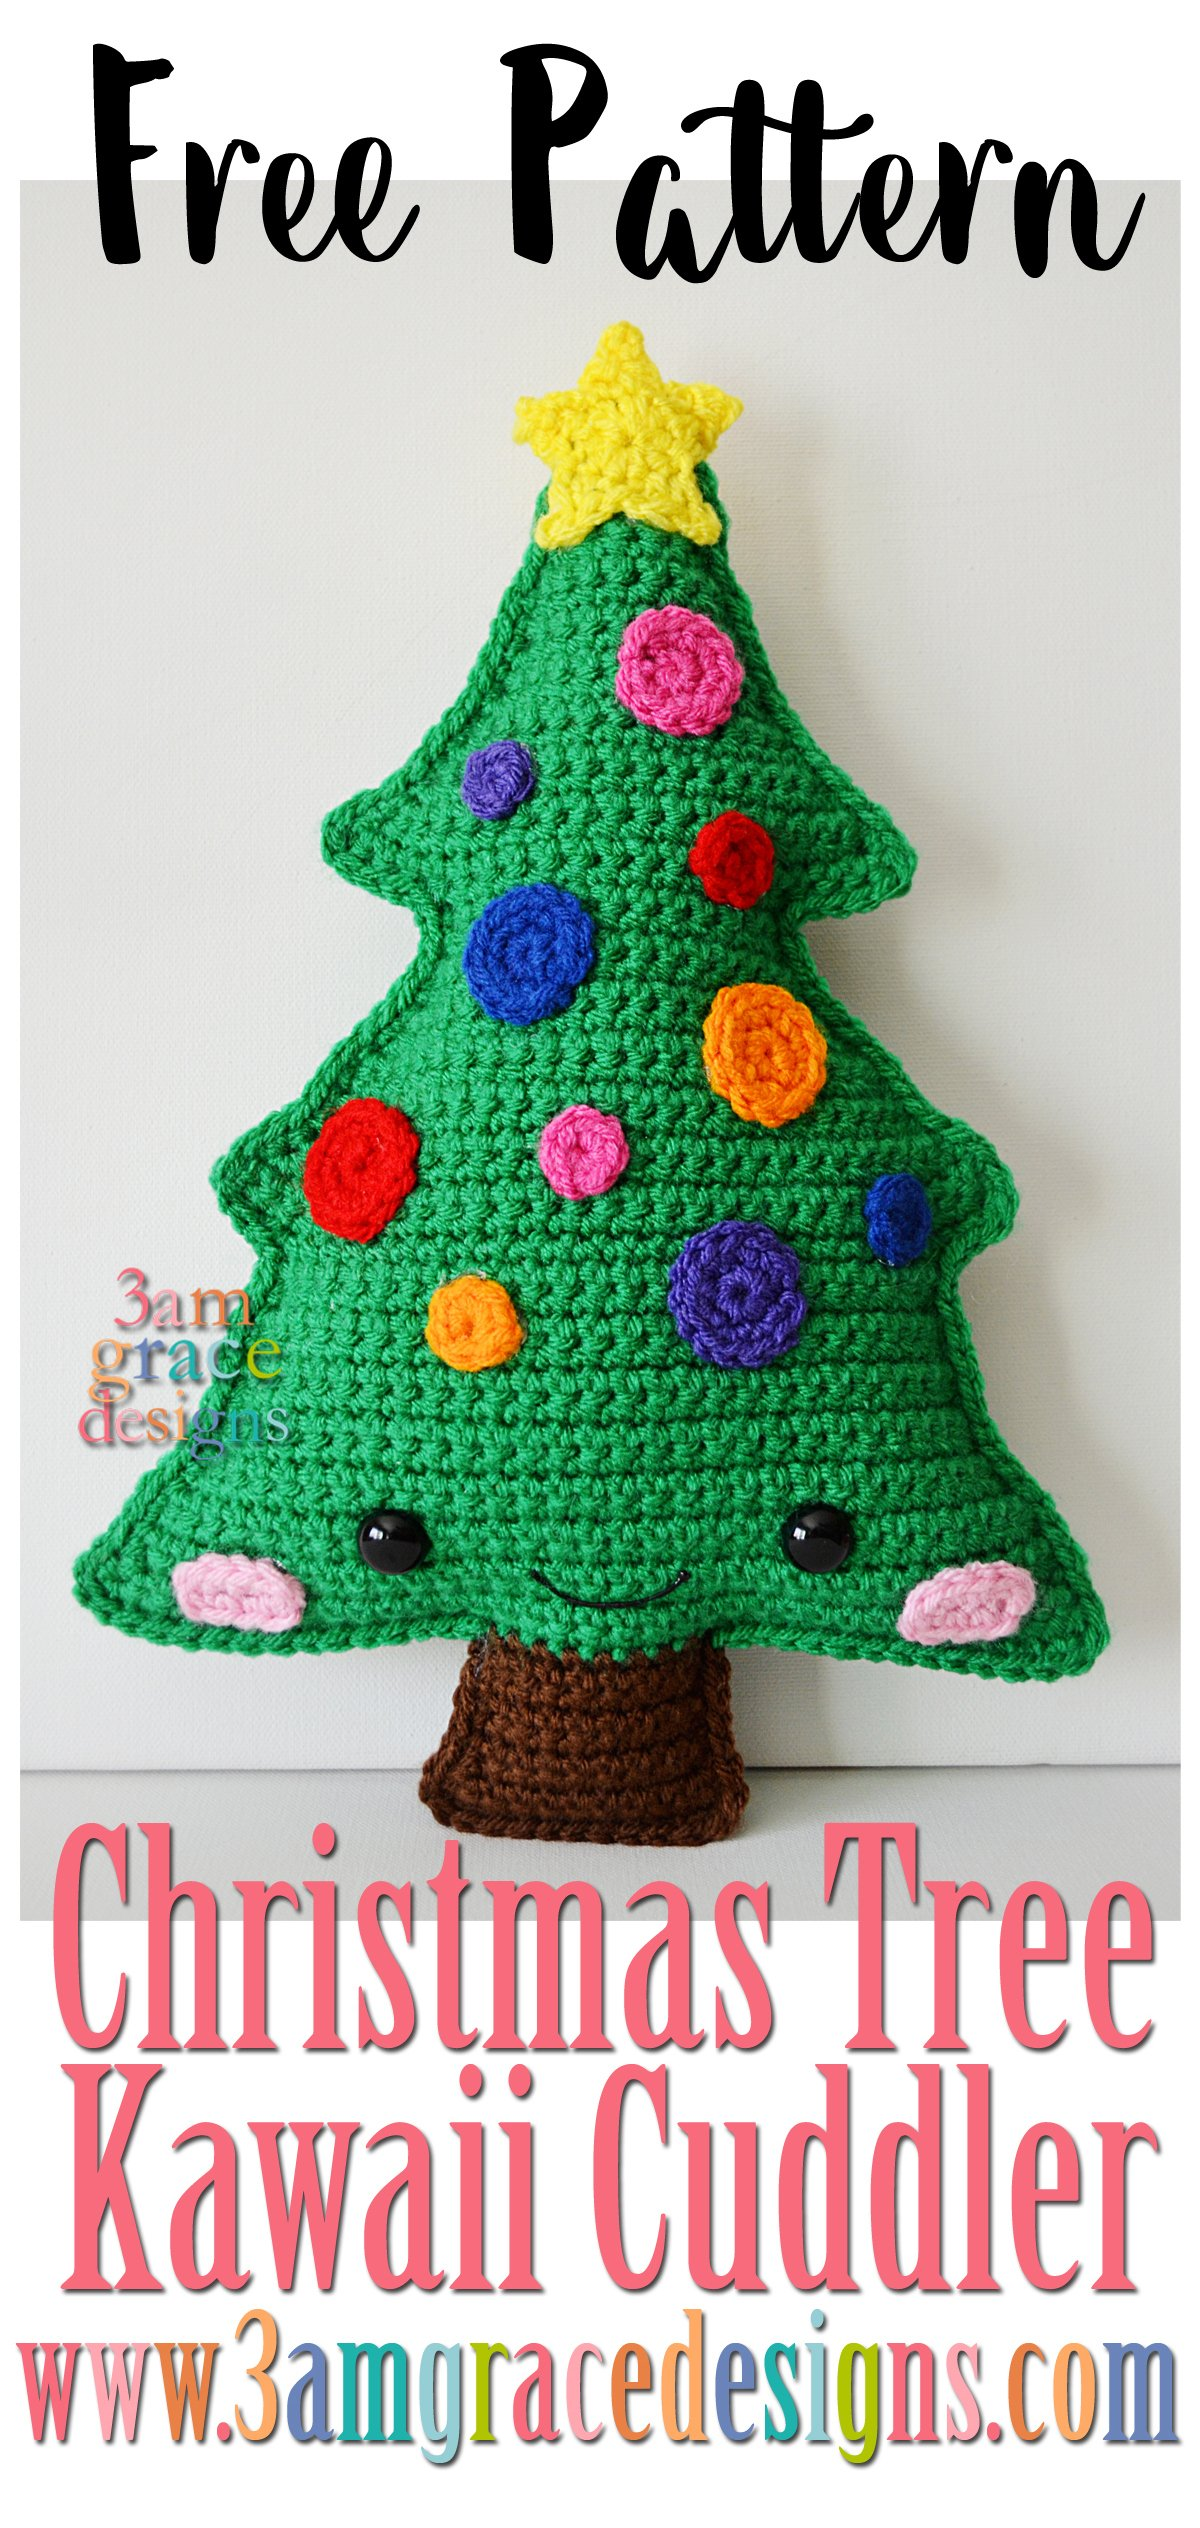 Christmas tree kawaii cuddler 3amgracedesigns we had the honor of being a contributor for ashleigh from sewrella ashleigh is a fabulous crochet designer and an all around sweetheart bankloansurffo Choice Image